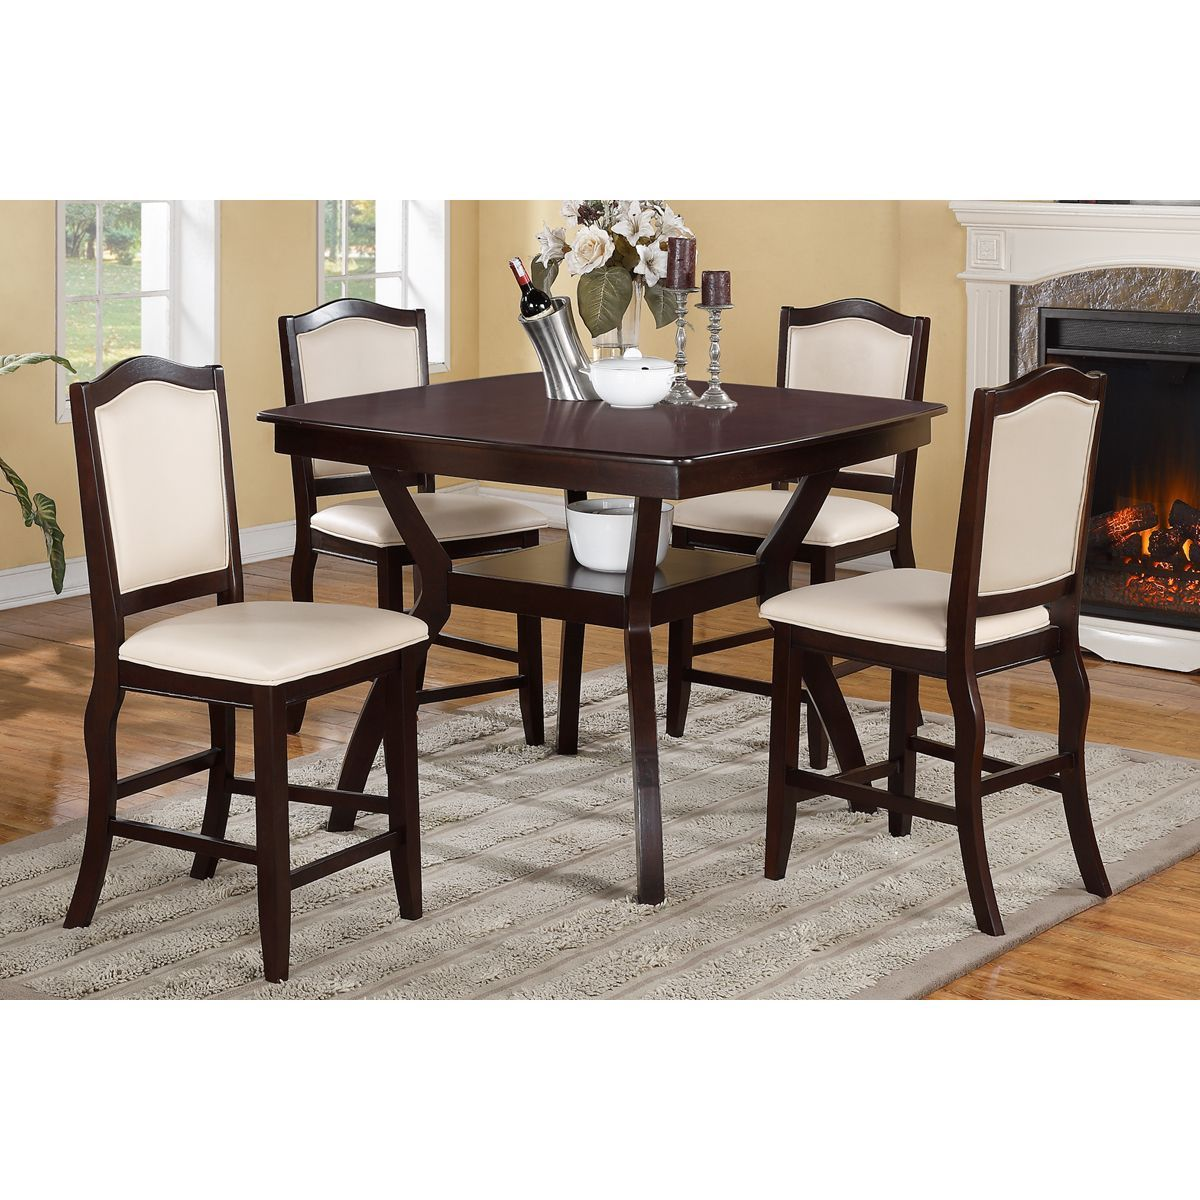 Poundex Halden Dark Brown 5 Piece Counter Height Dining Set